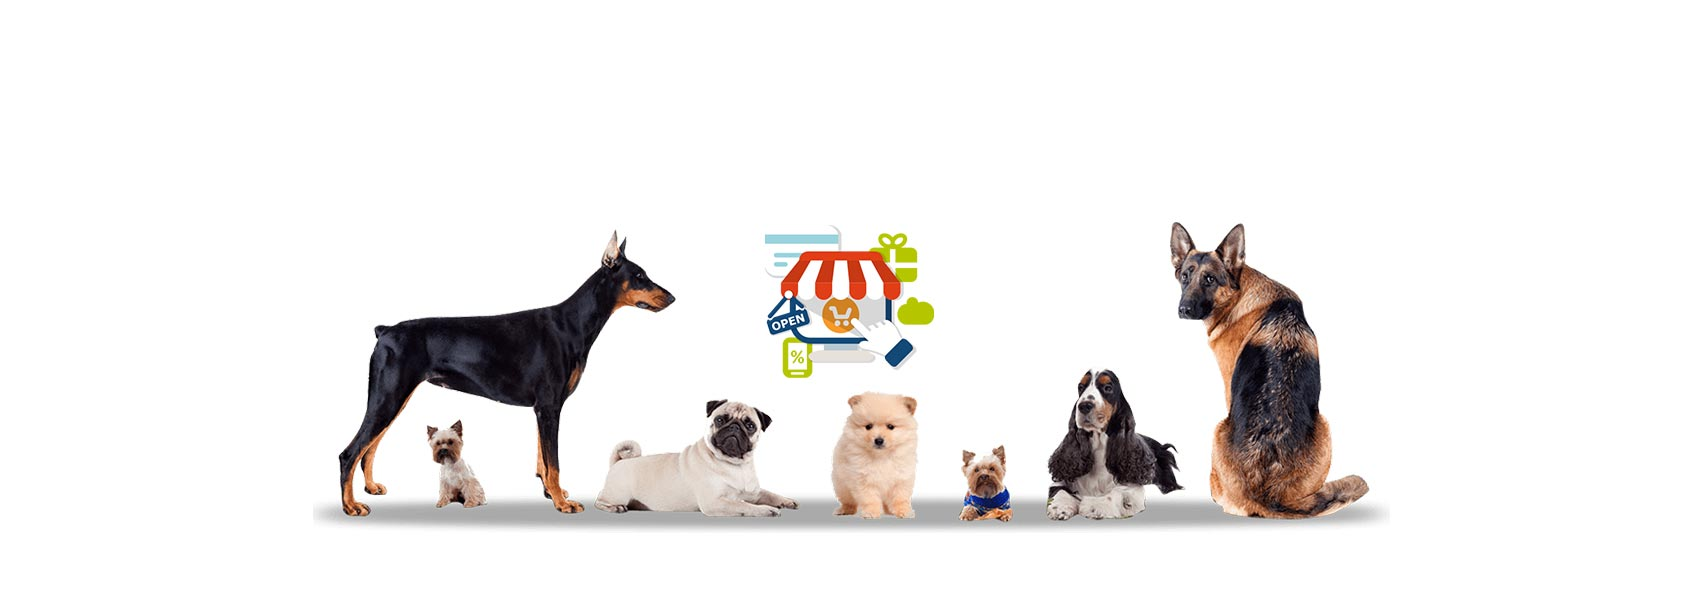 How To Start An Online Pet Store Ecommerce Website In India And Market It Online Finsoft It Solutions